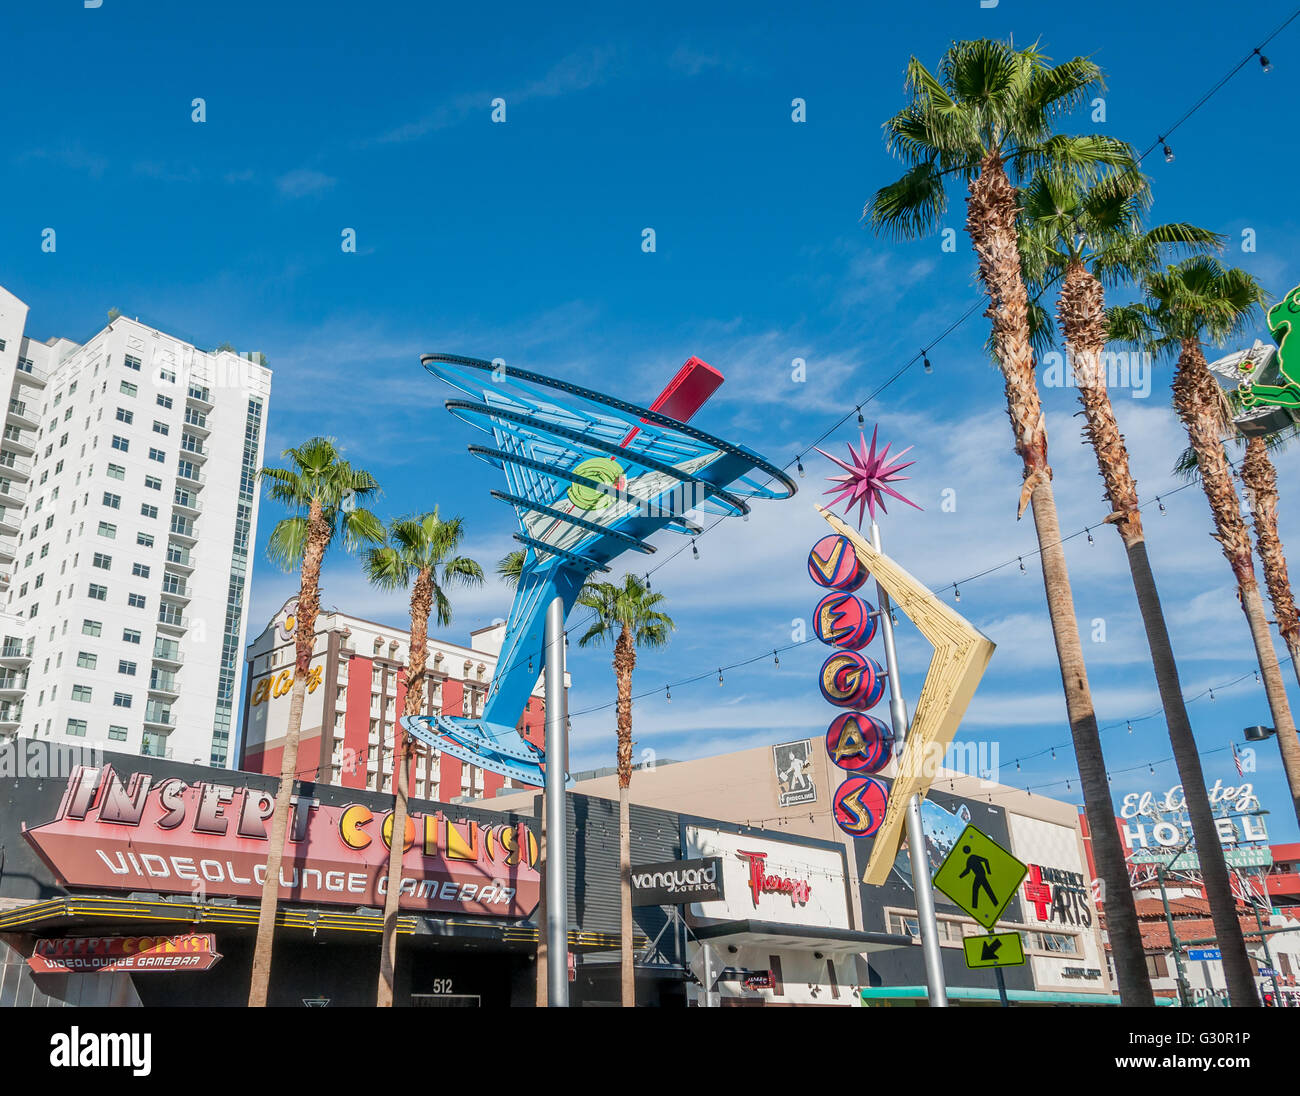 Fremont Street by day with martini glass and Vegas neon signs in Fremont East district of Las Vegas, El Cortez sign - Stock Image